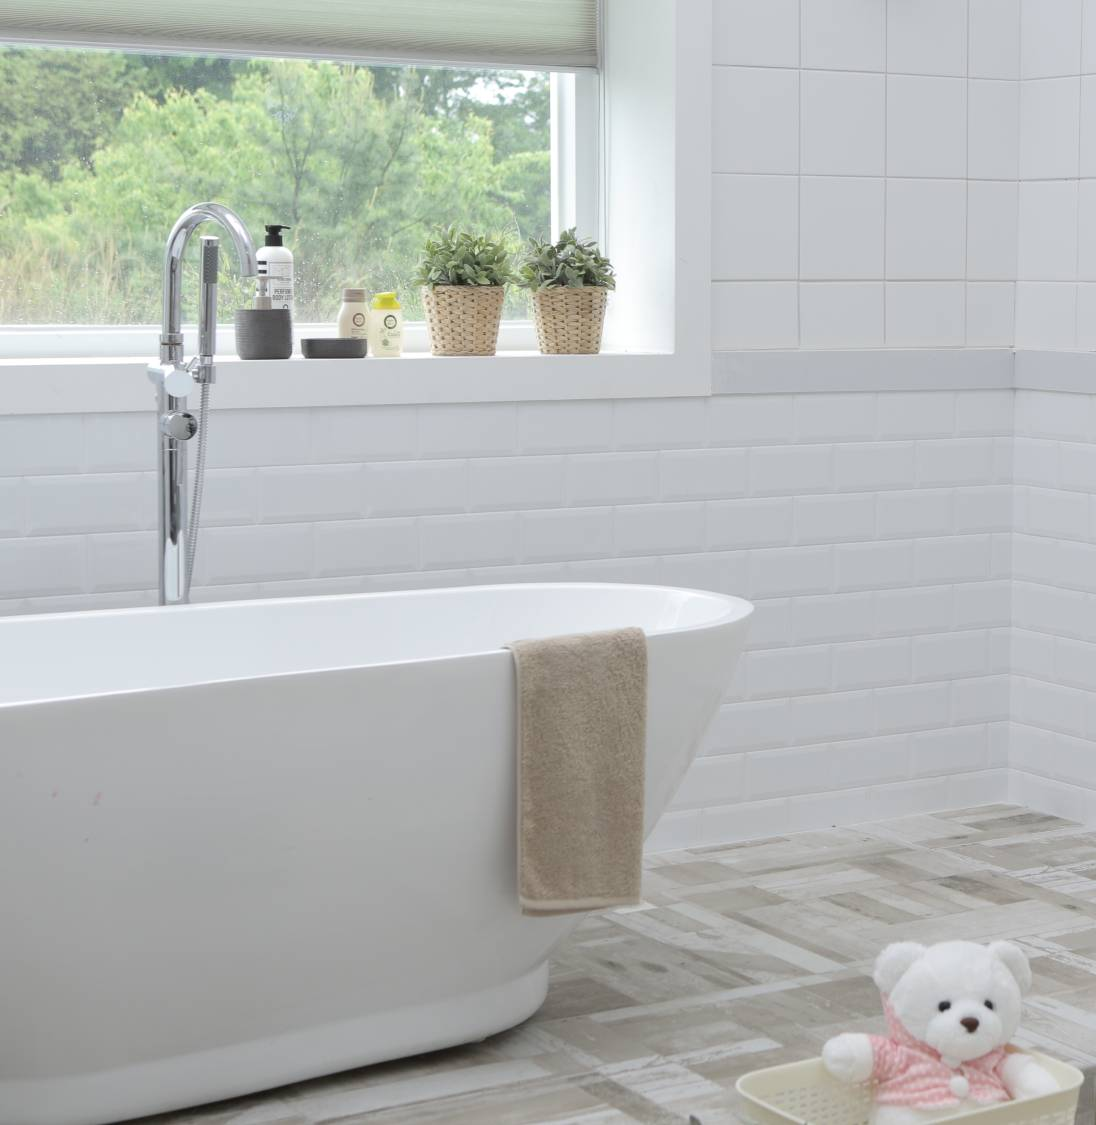 How do I clean a bathroom before moving in?